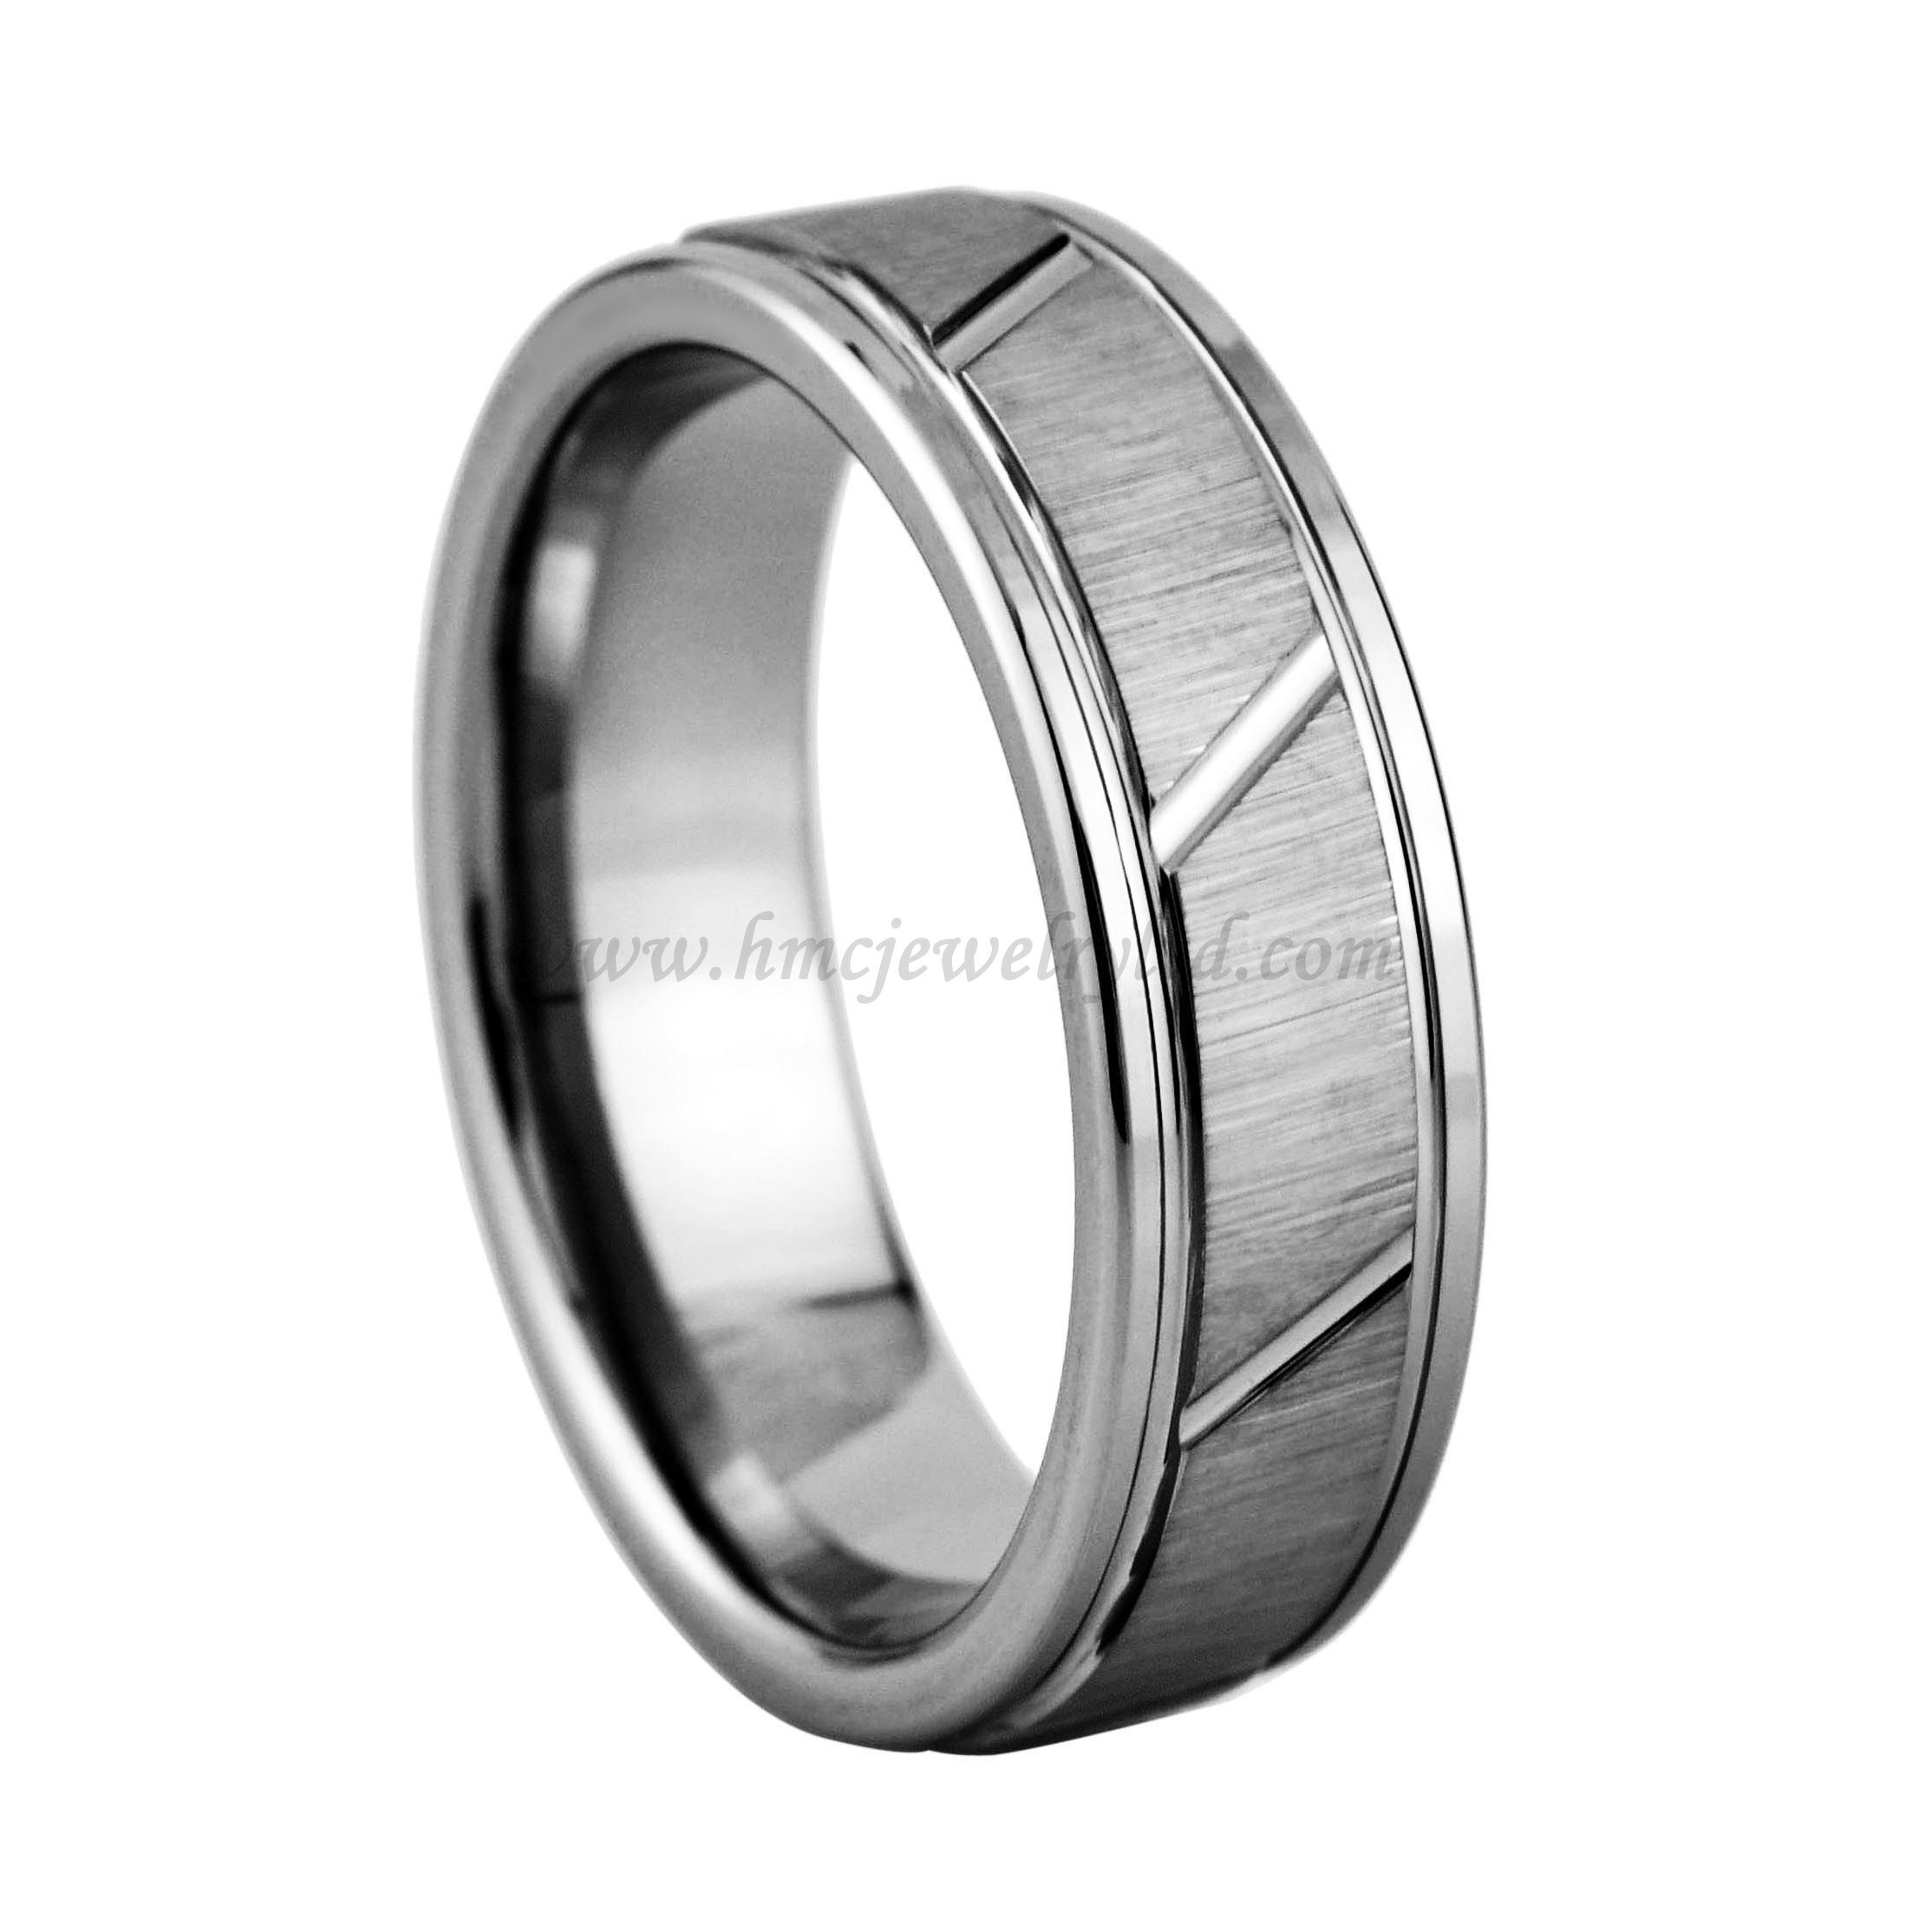 pin ring mens wedding gold rings surface brush dome tone two rose carbide matte tungsten band